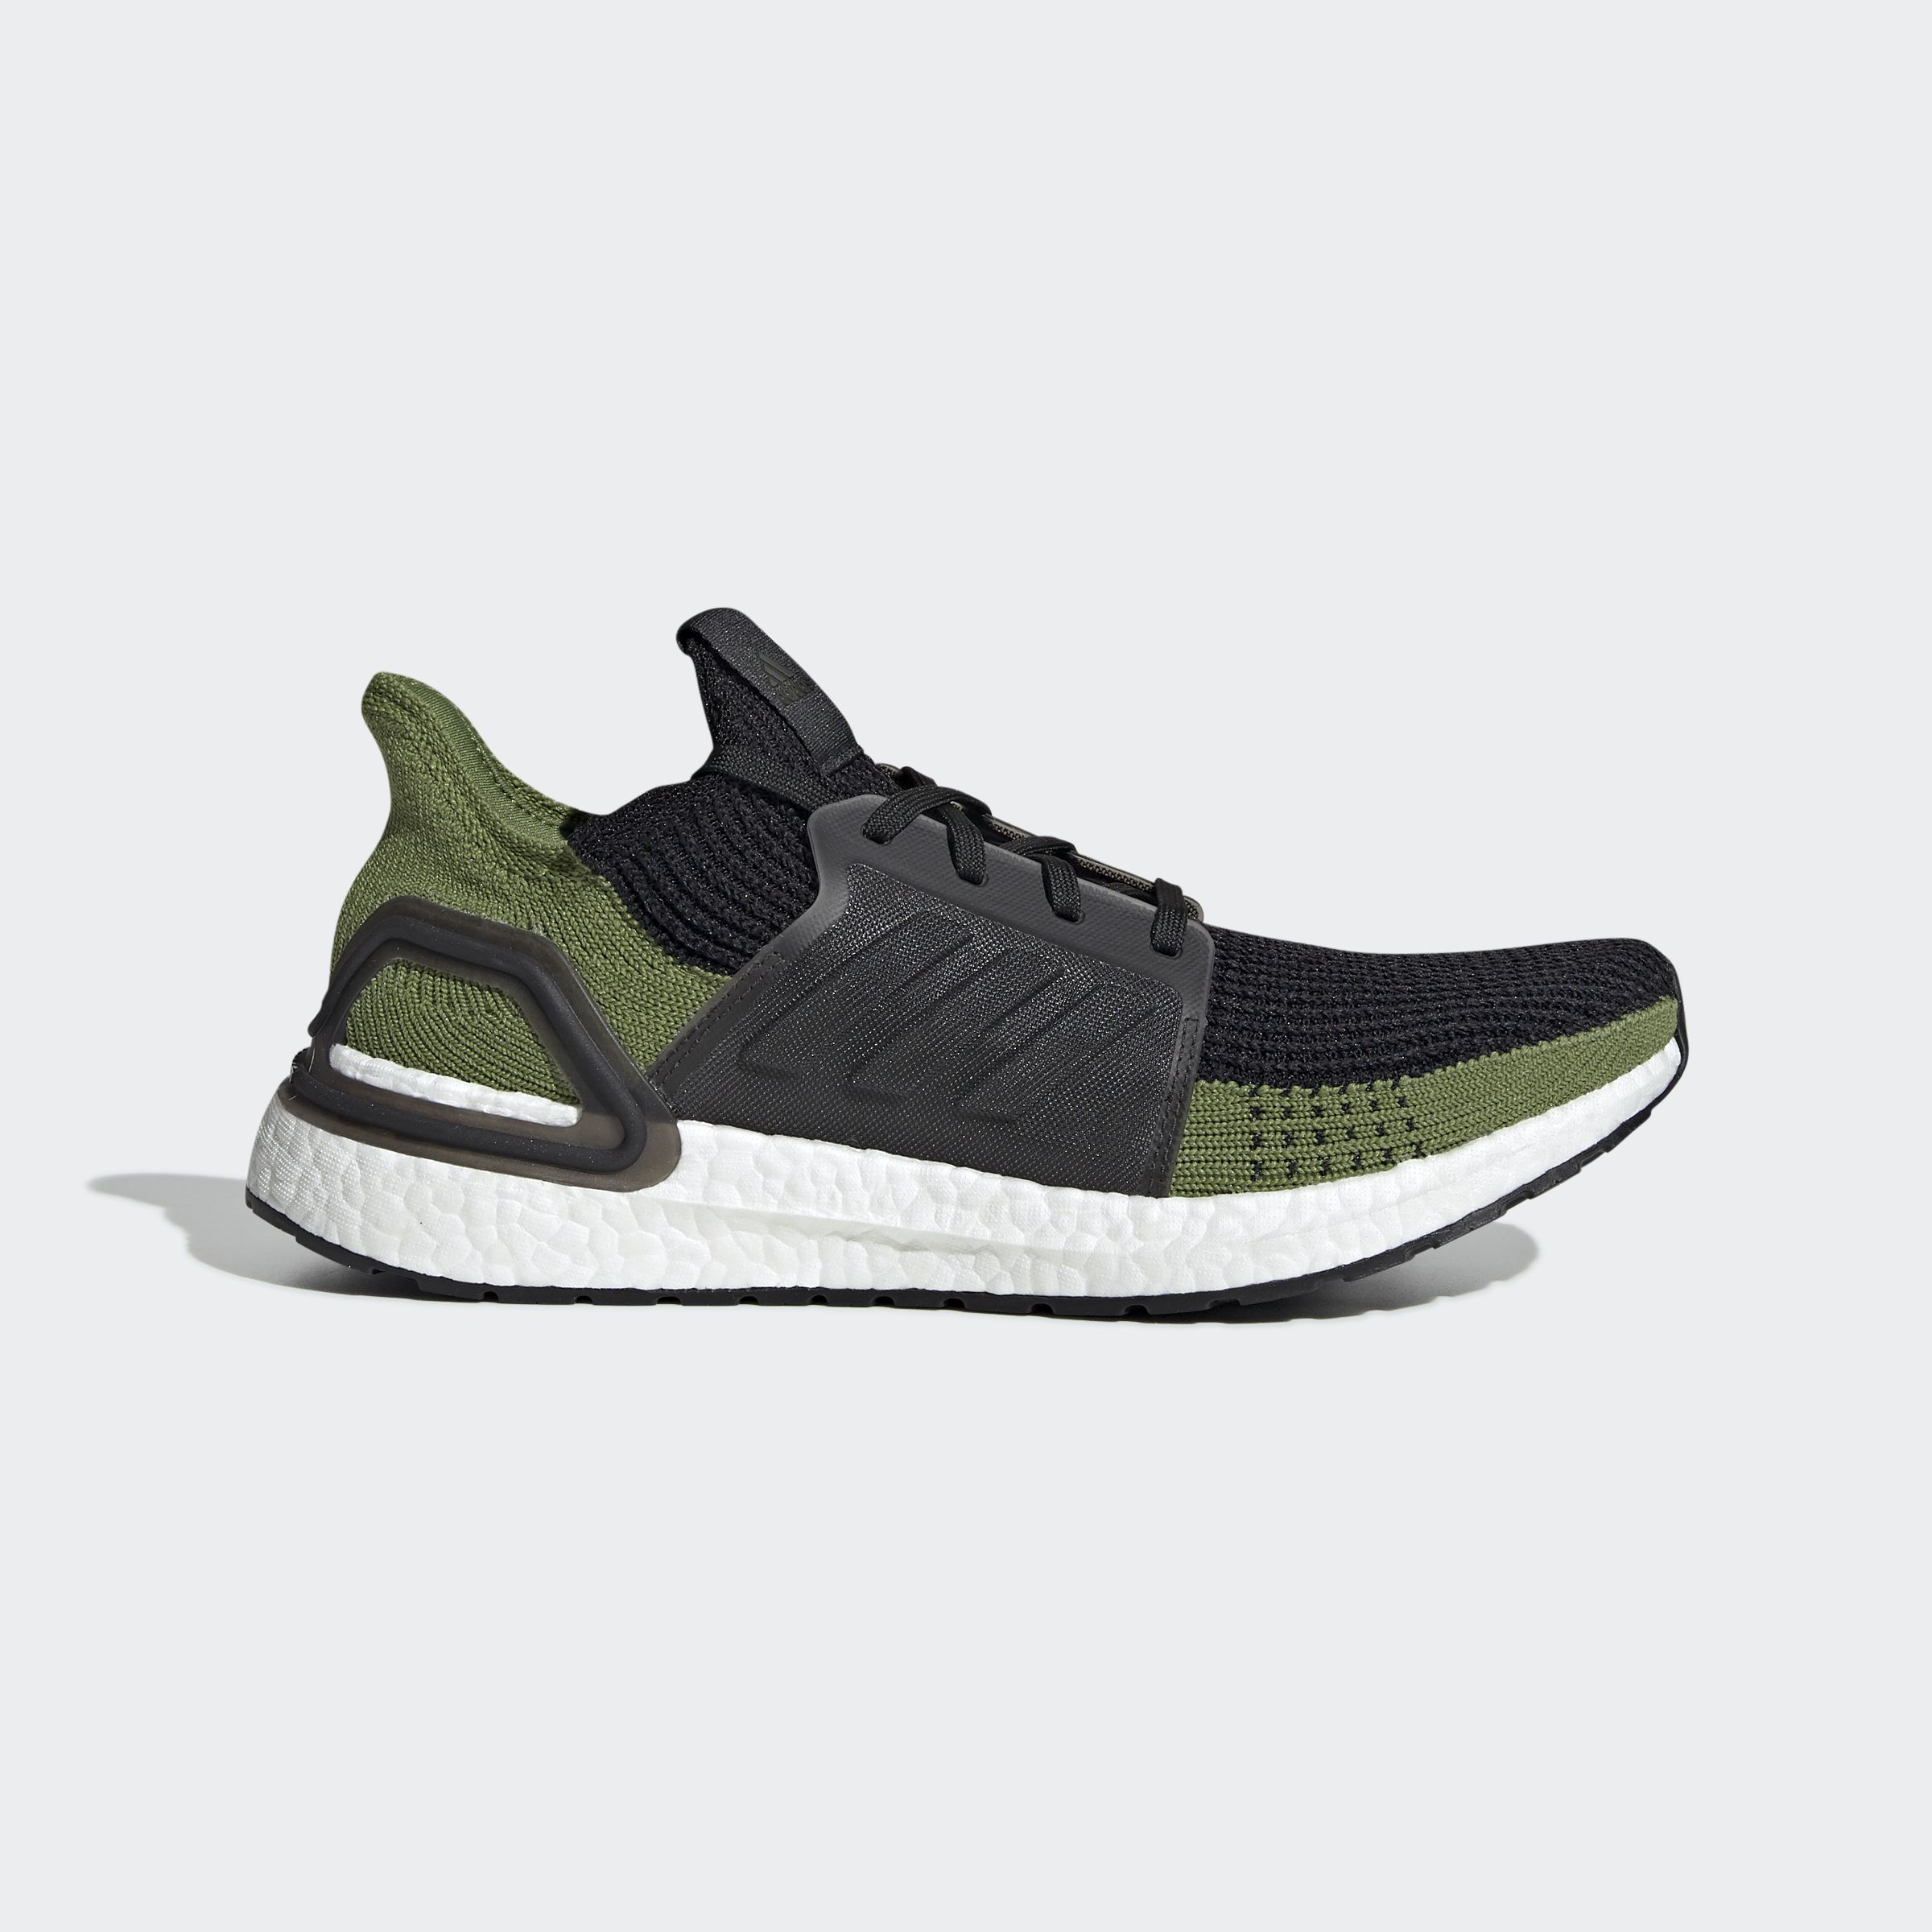 adidas-Ultraboost-19-Shoes-Athletic-amp-Sneakers thumbnail 101